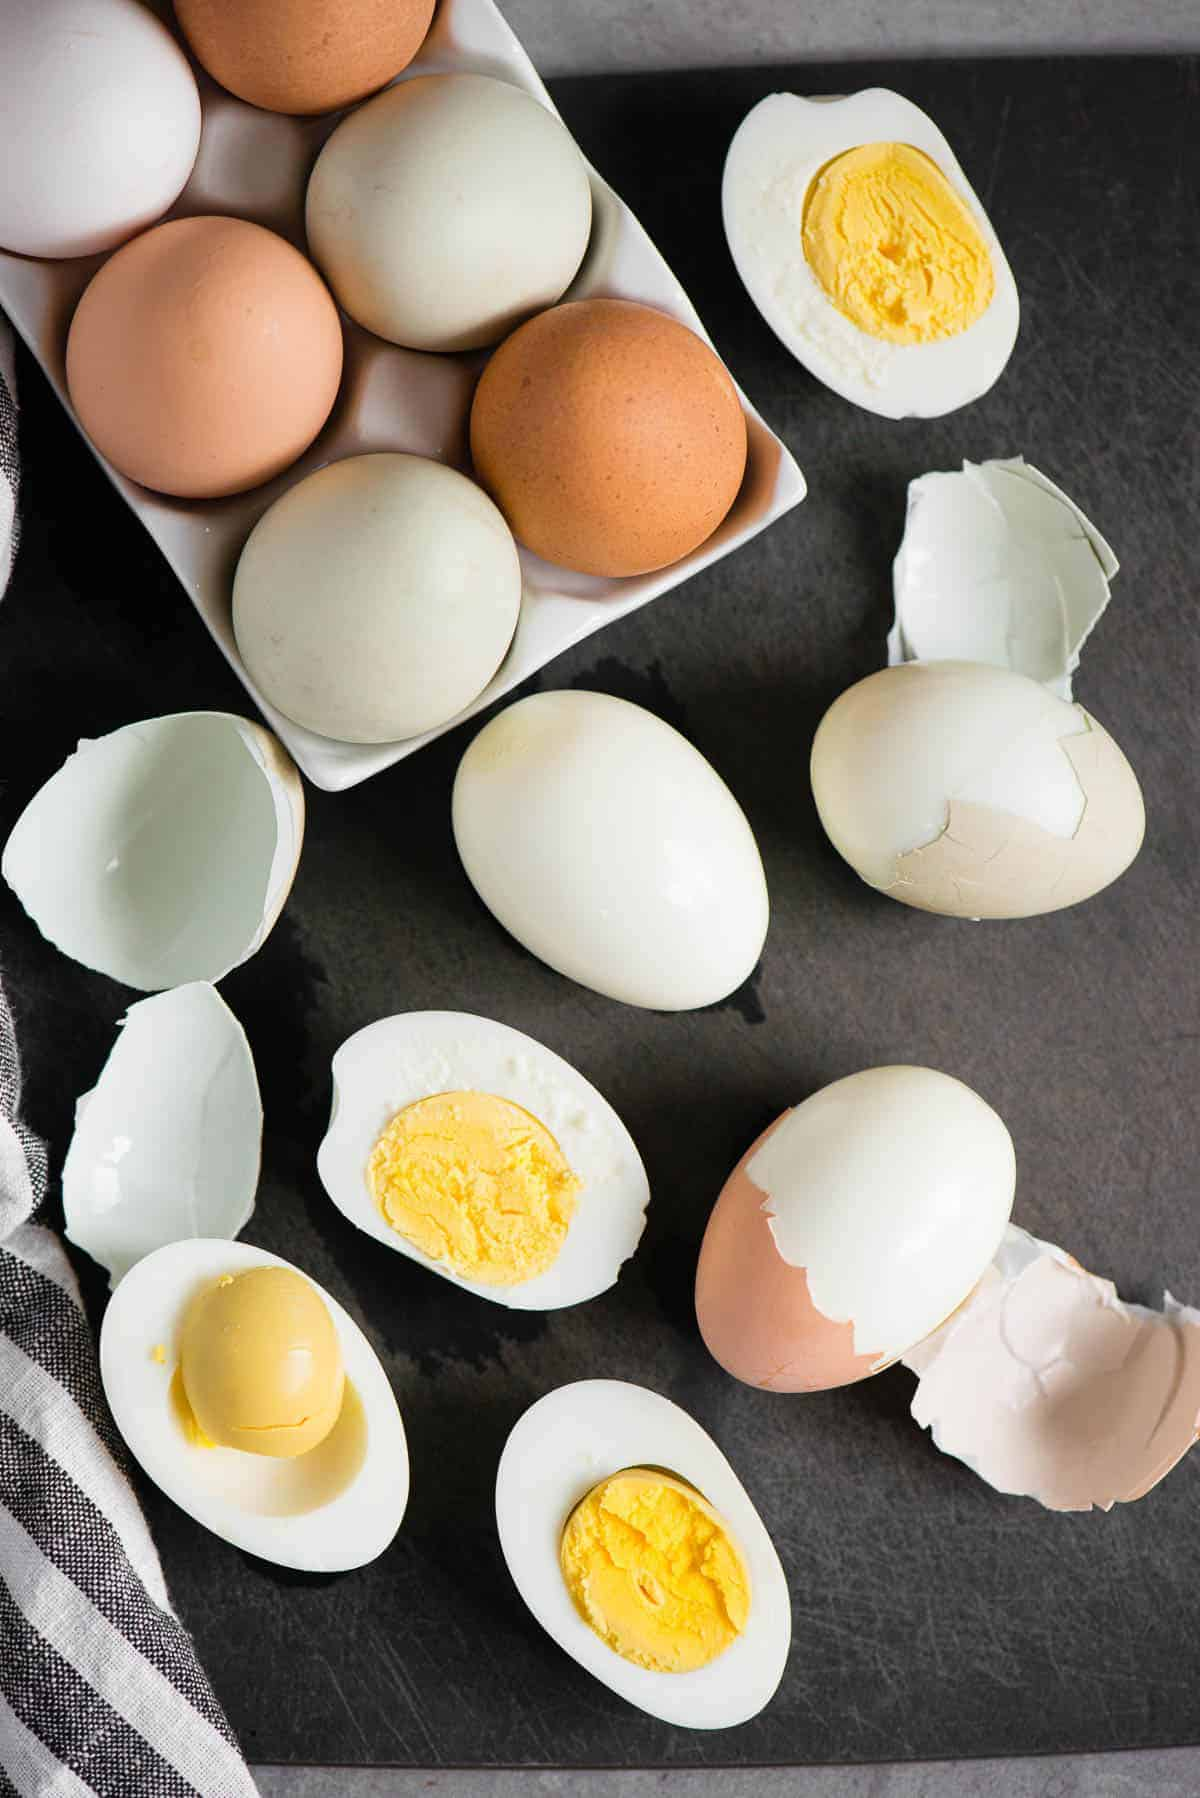 eggs that have been hard boiled